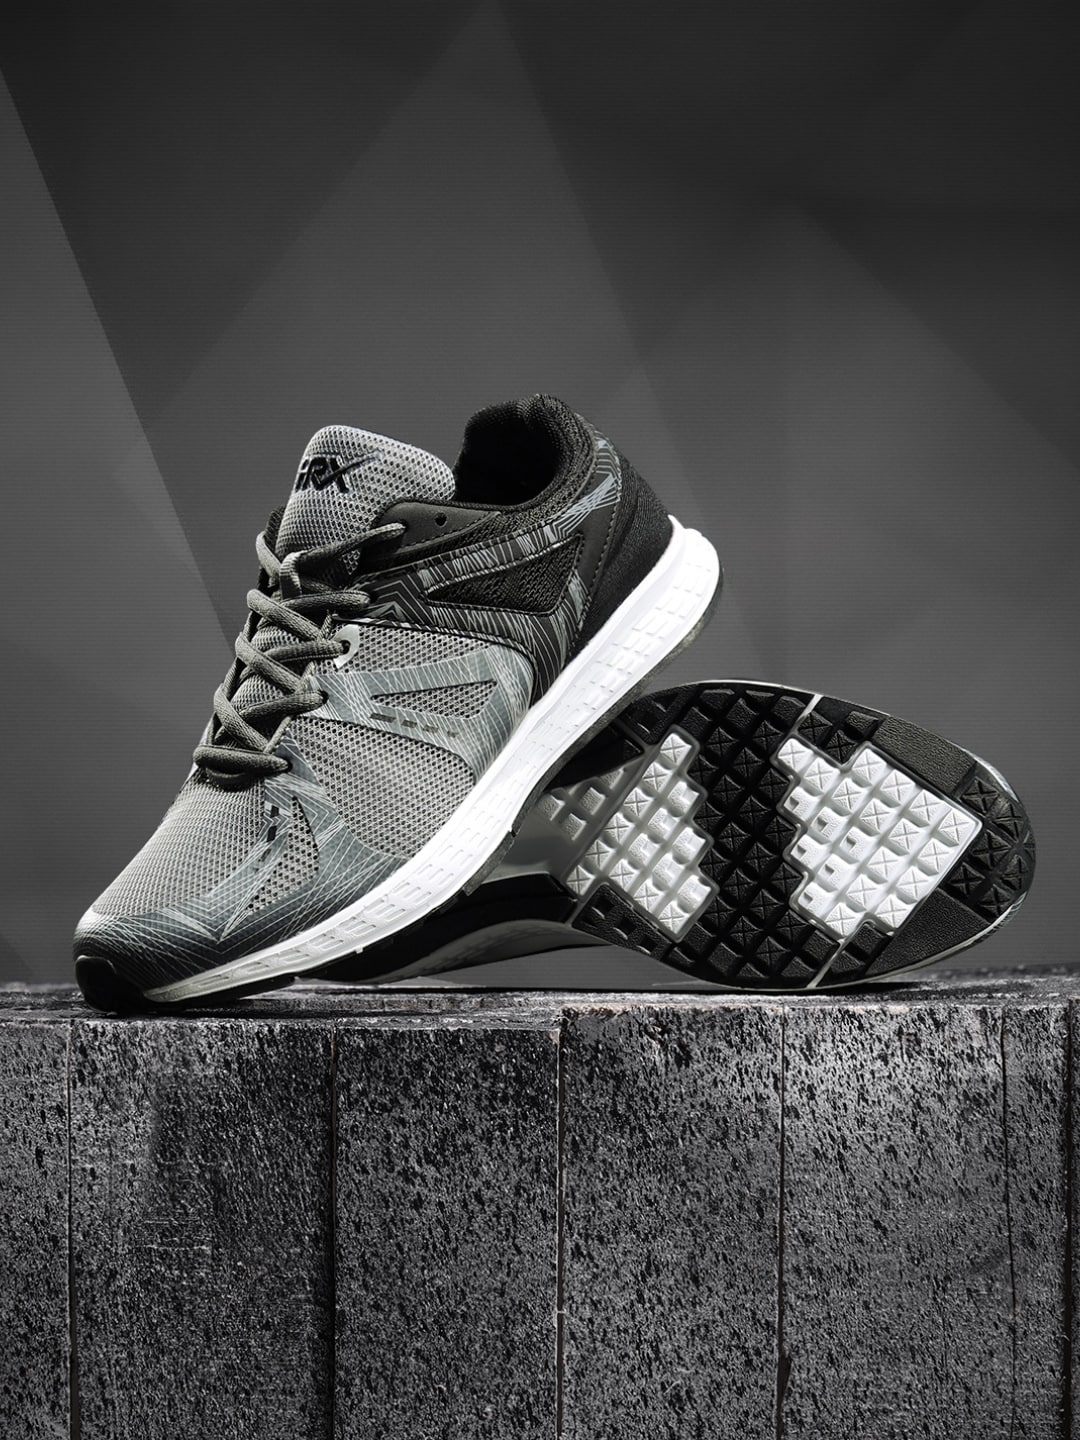 1b565770d86 Sports Shoes for Men - Buy Men Sports Shoes Online in India - Myntra